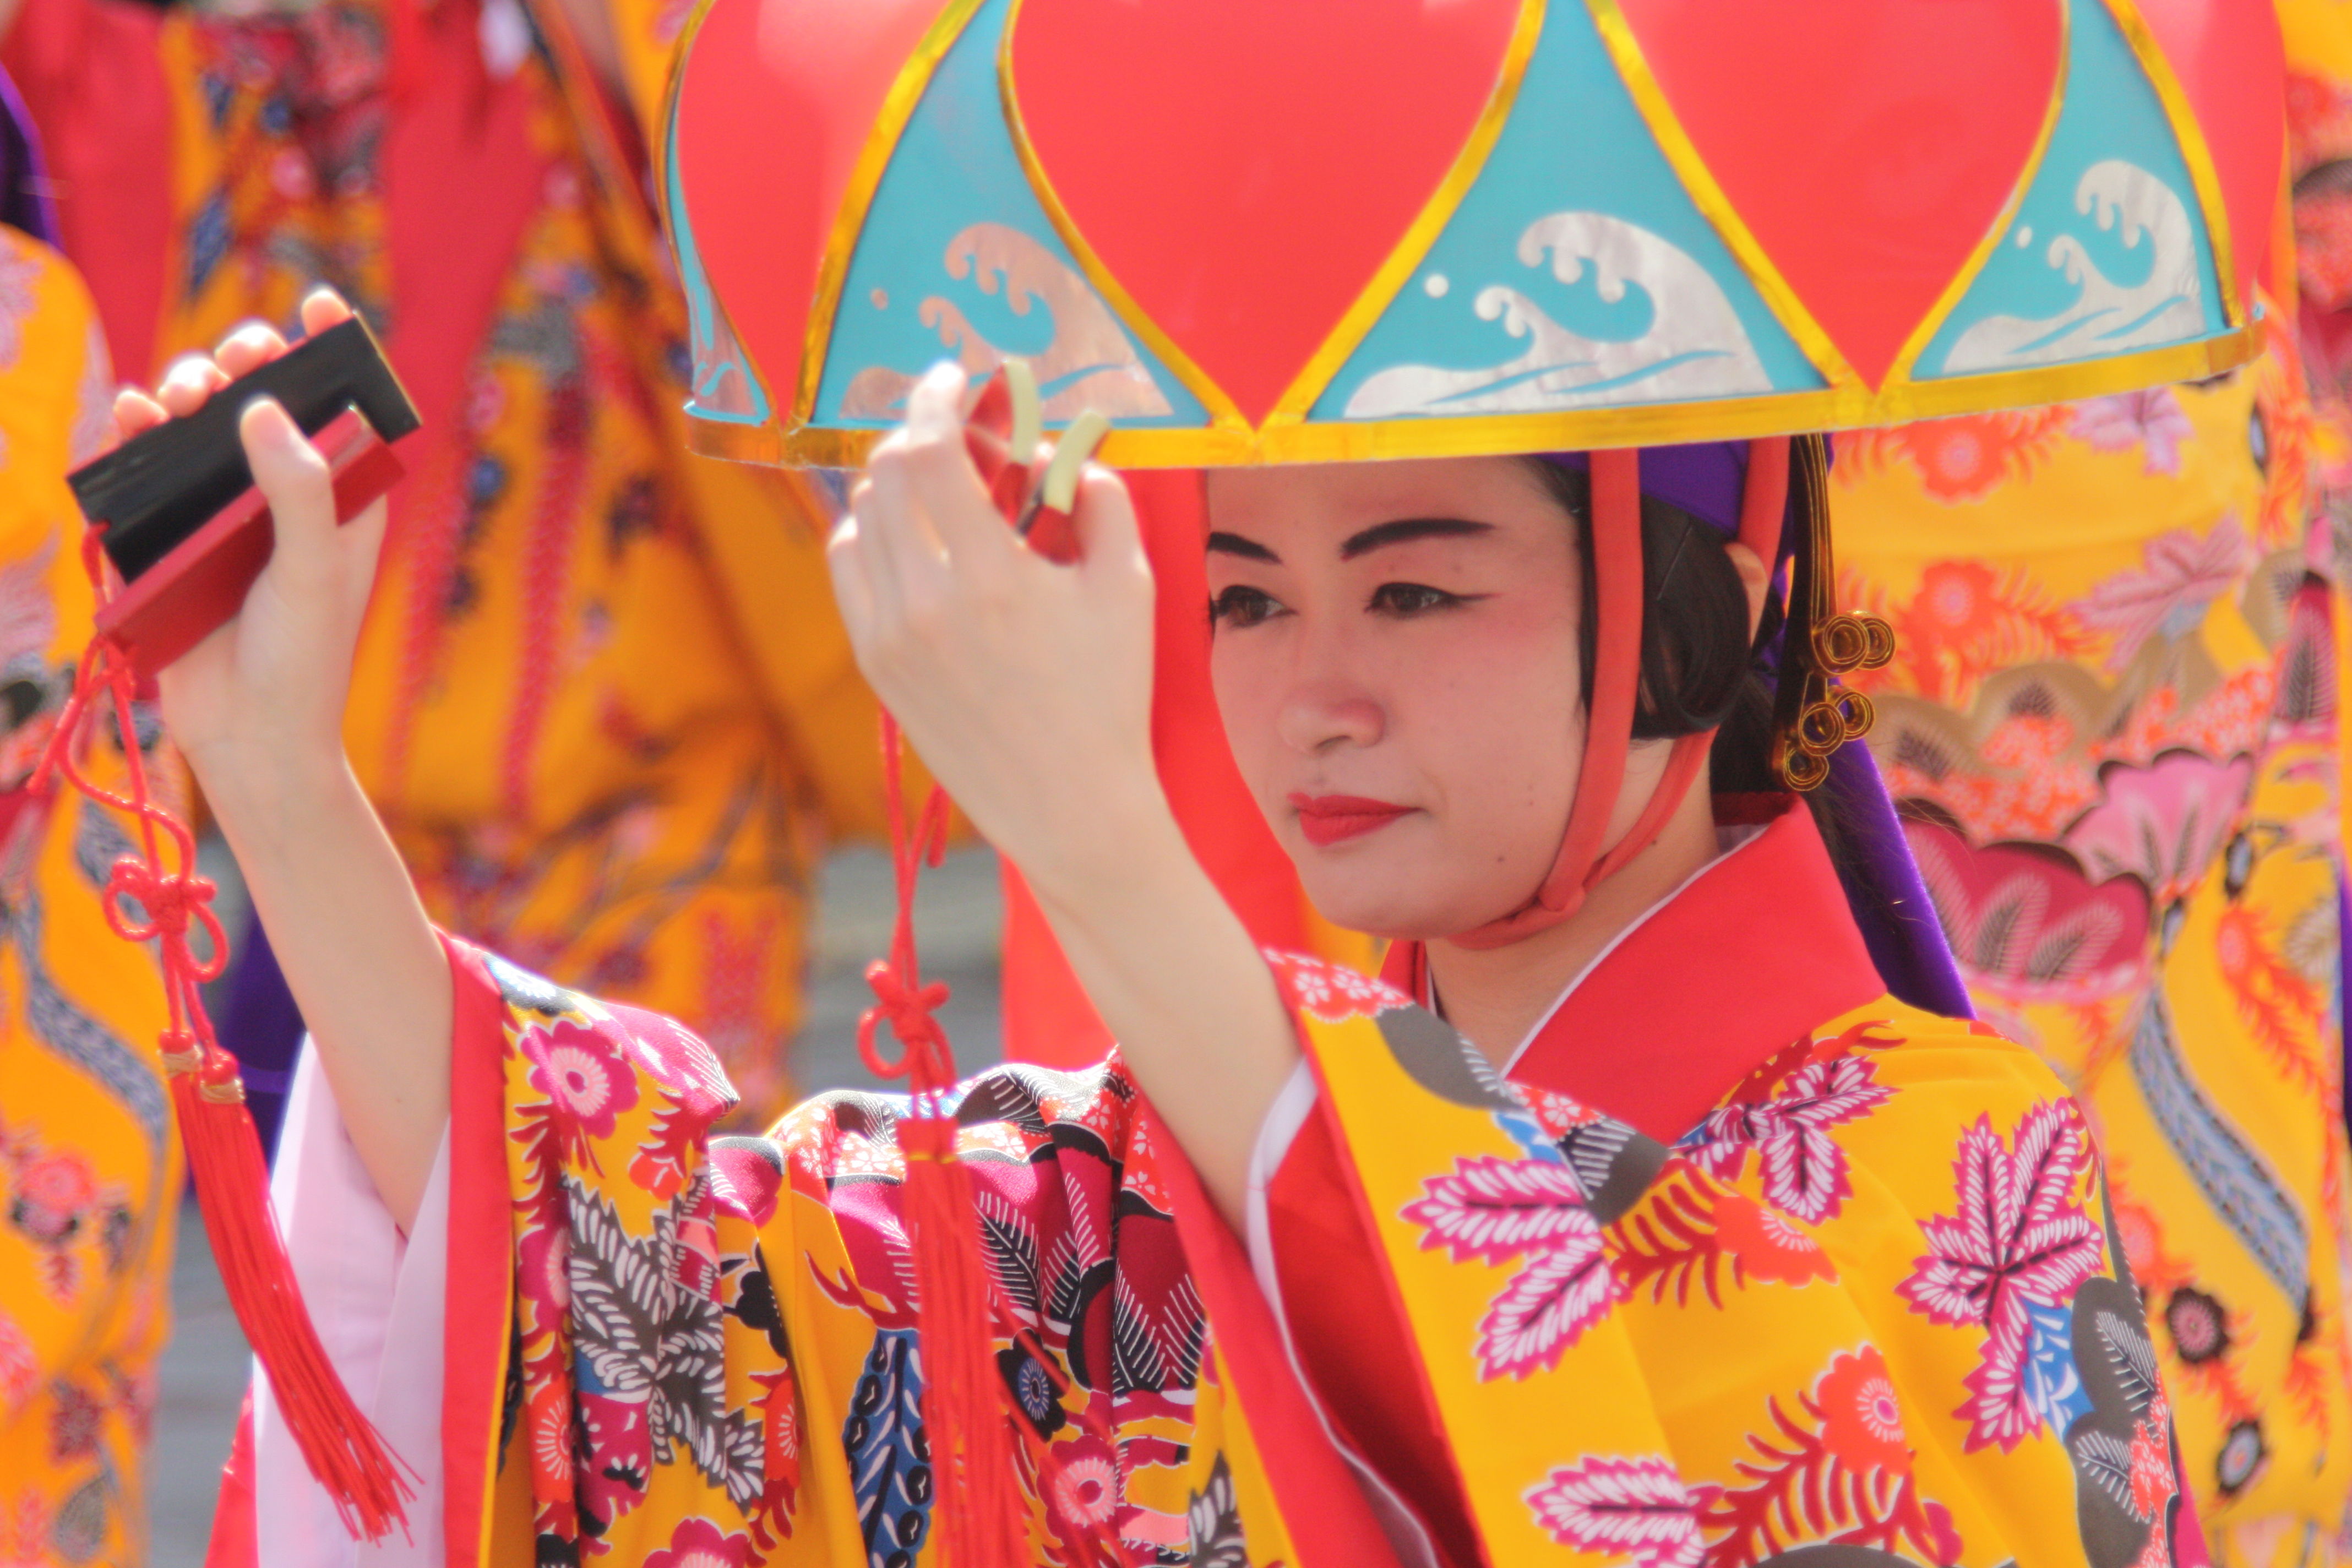 okinawa culture Posts about okinawan culture written by randy simpson, ms.